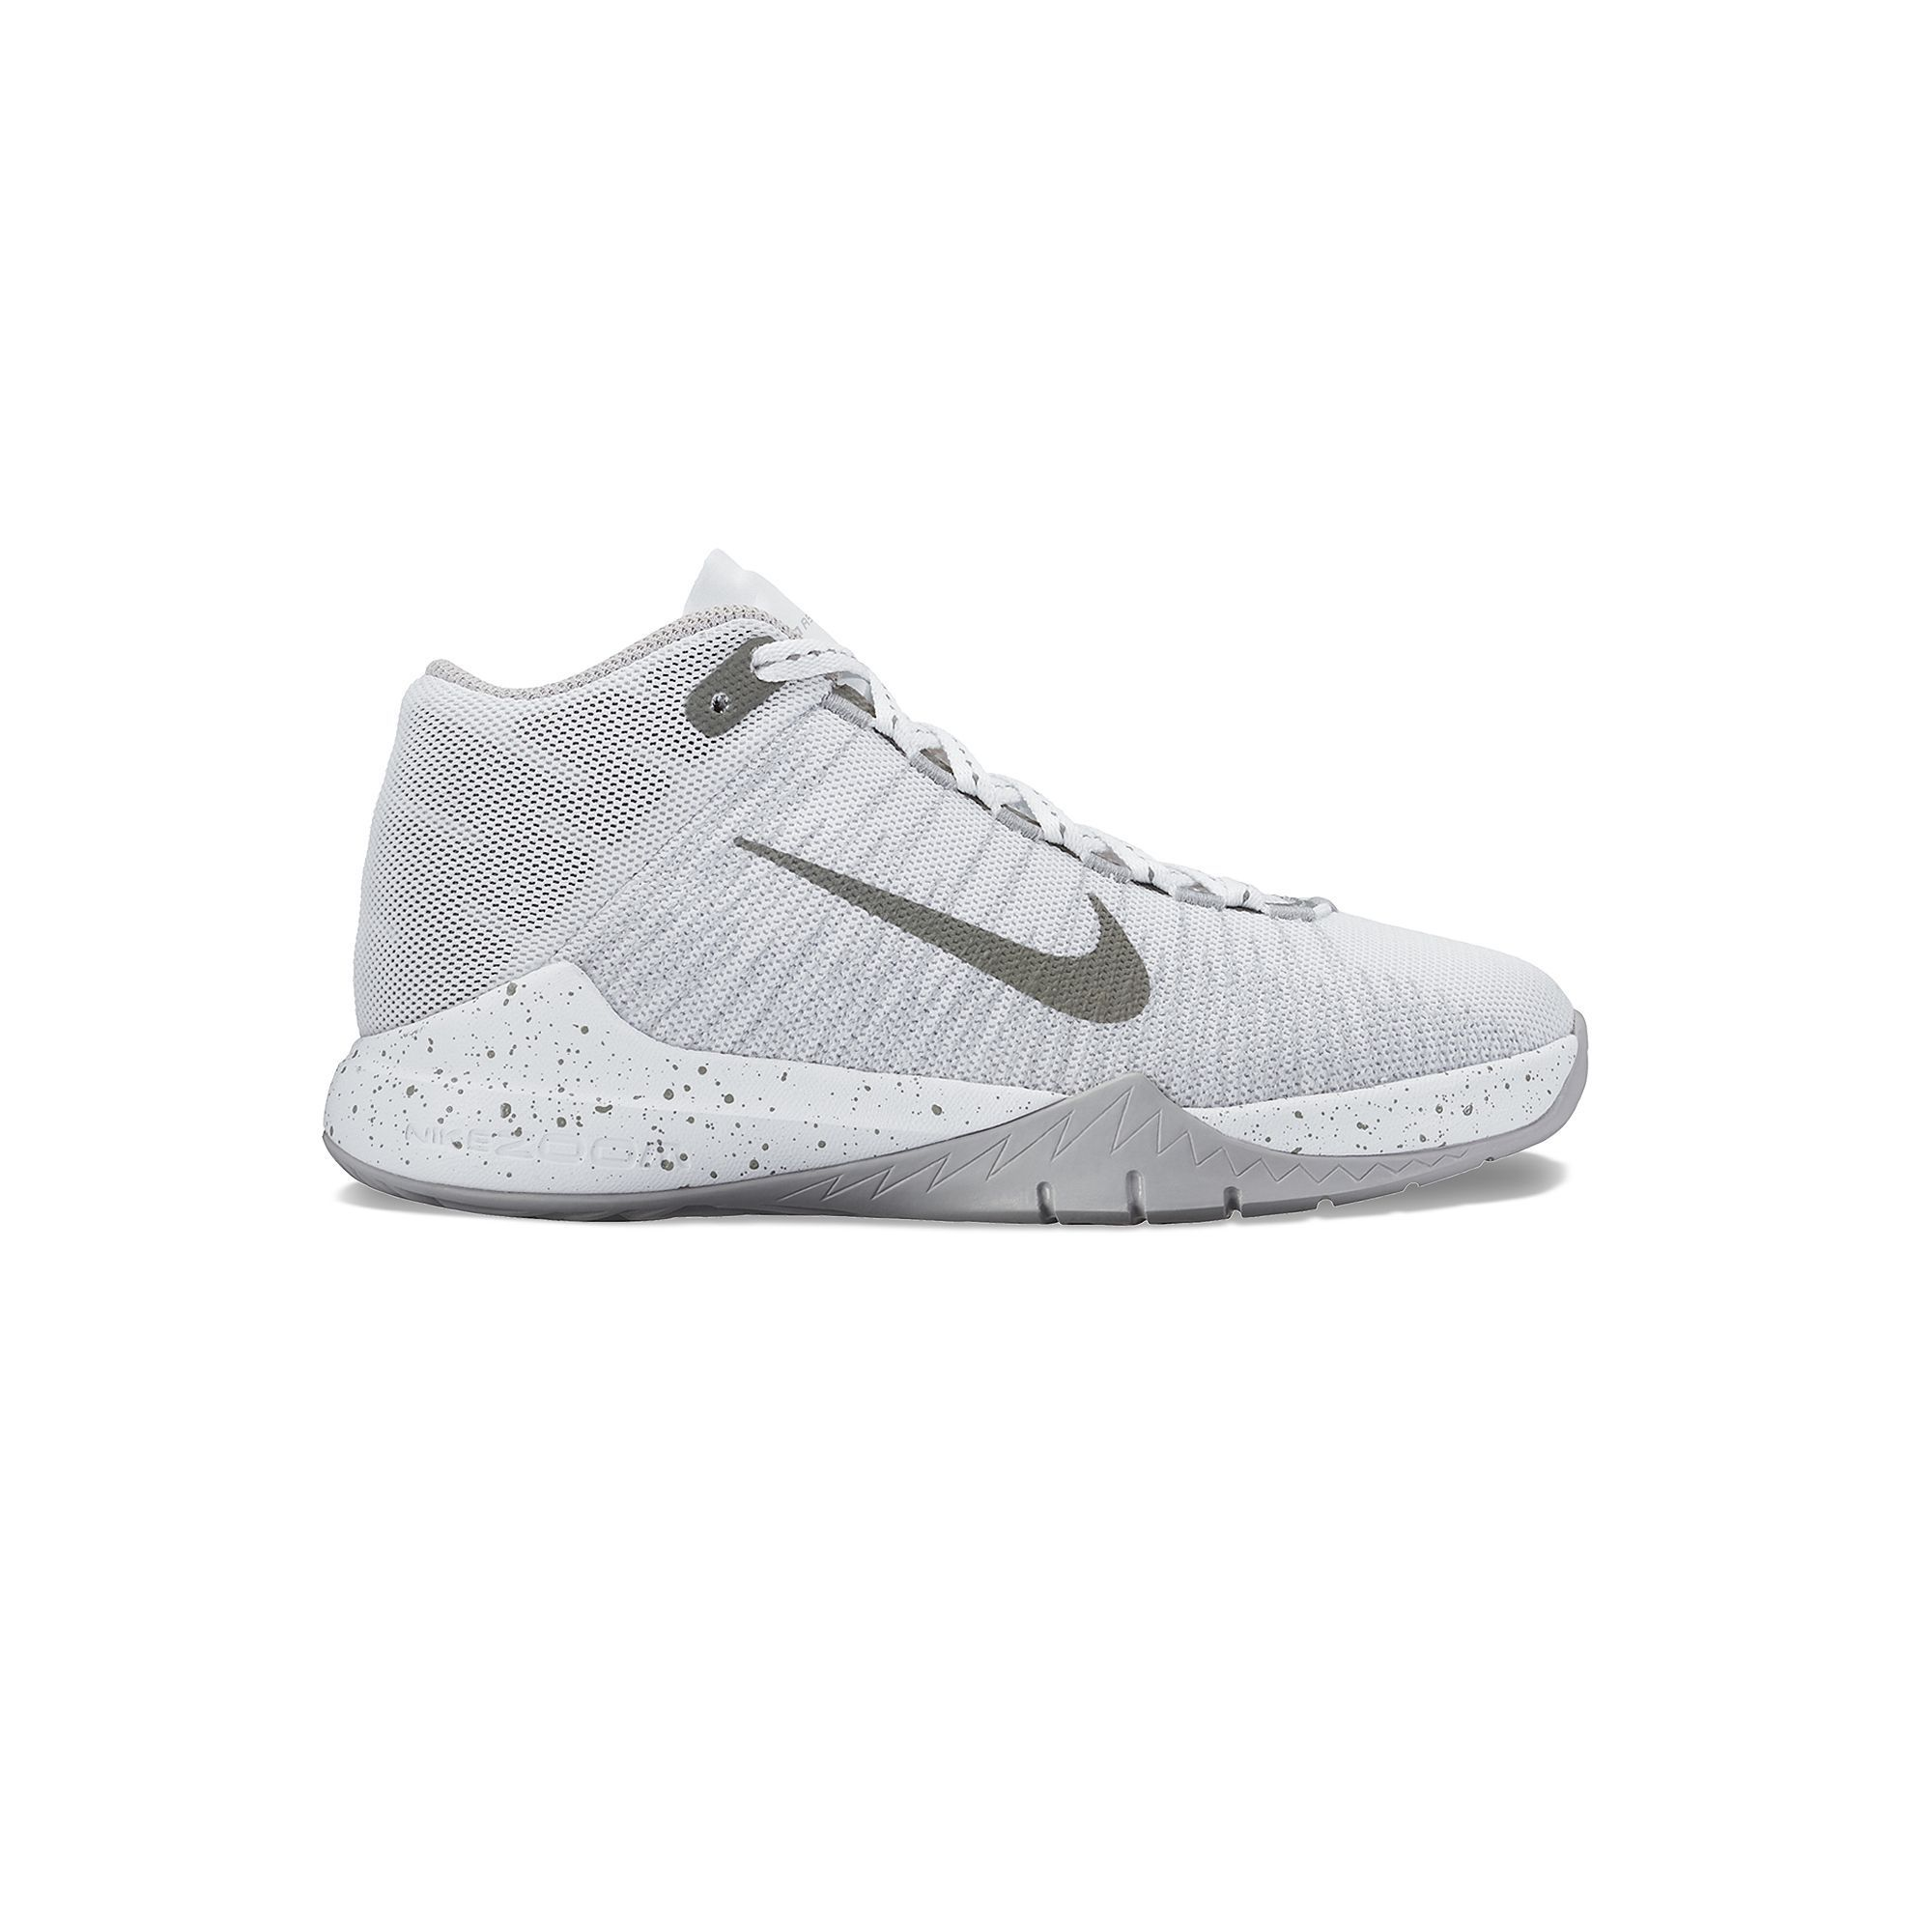 9002dfb5c359 Nike Zoom Ascension Grade School Boys  Basketball Shoes in 2018 ...